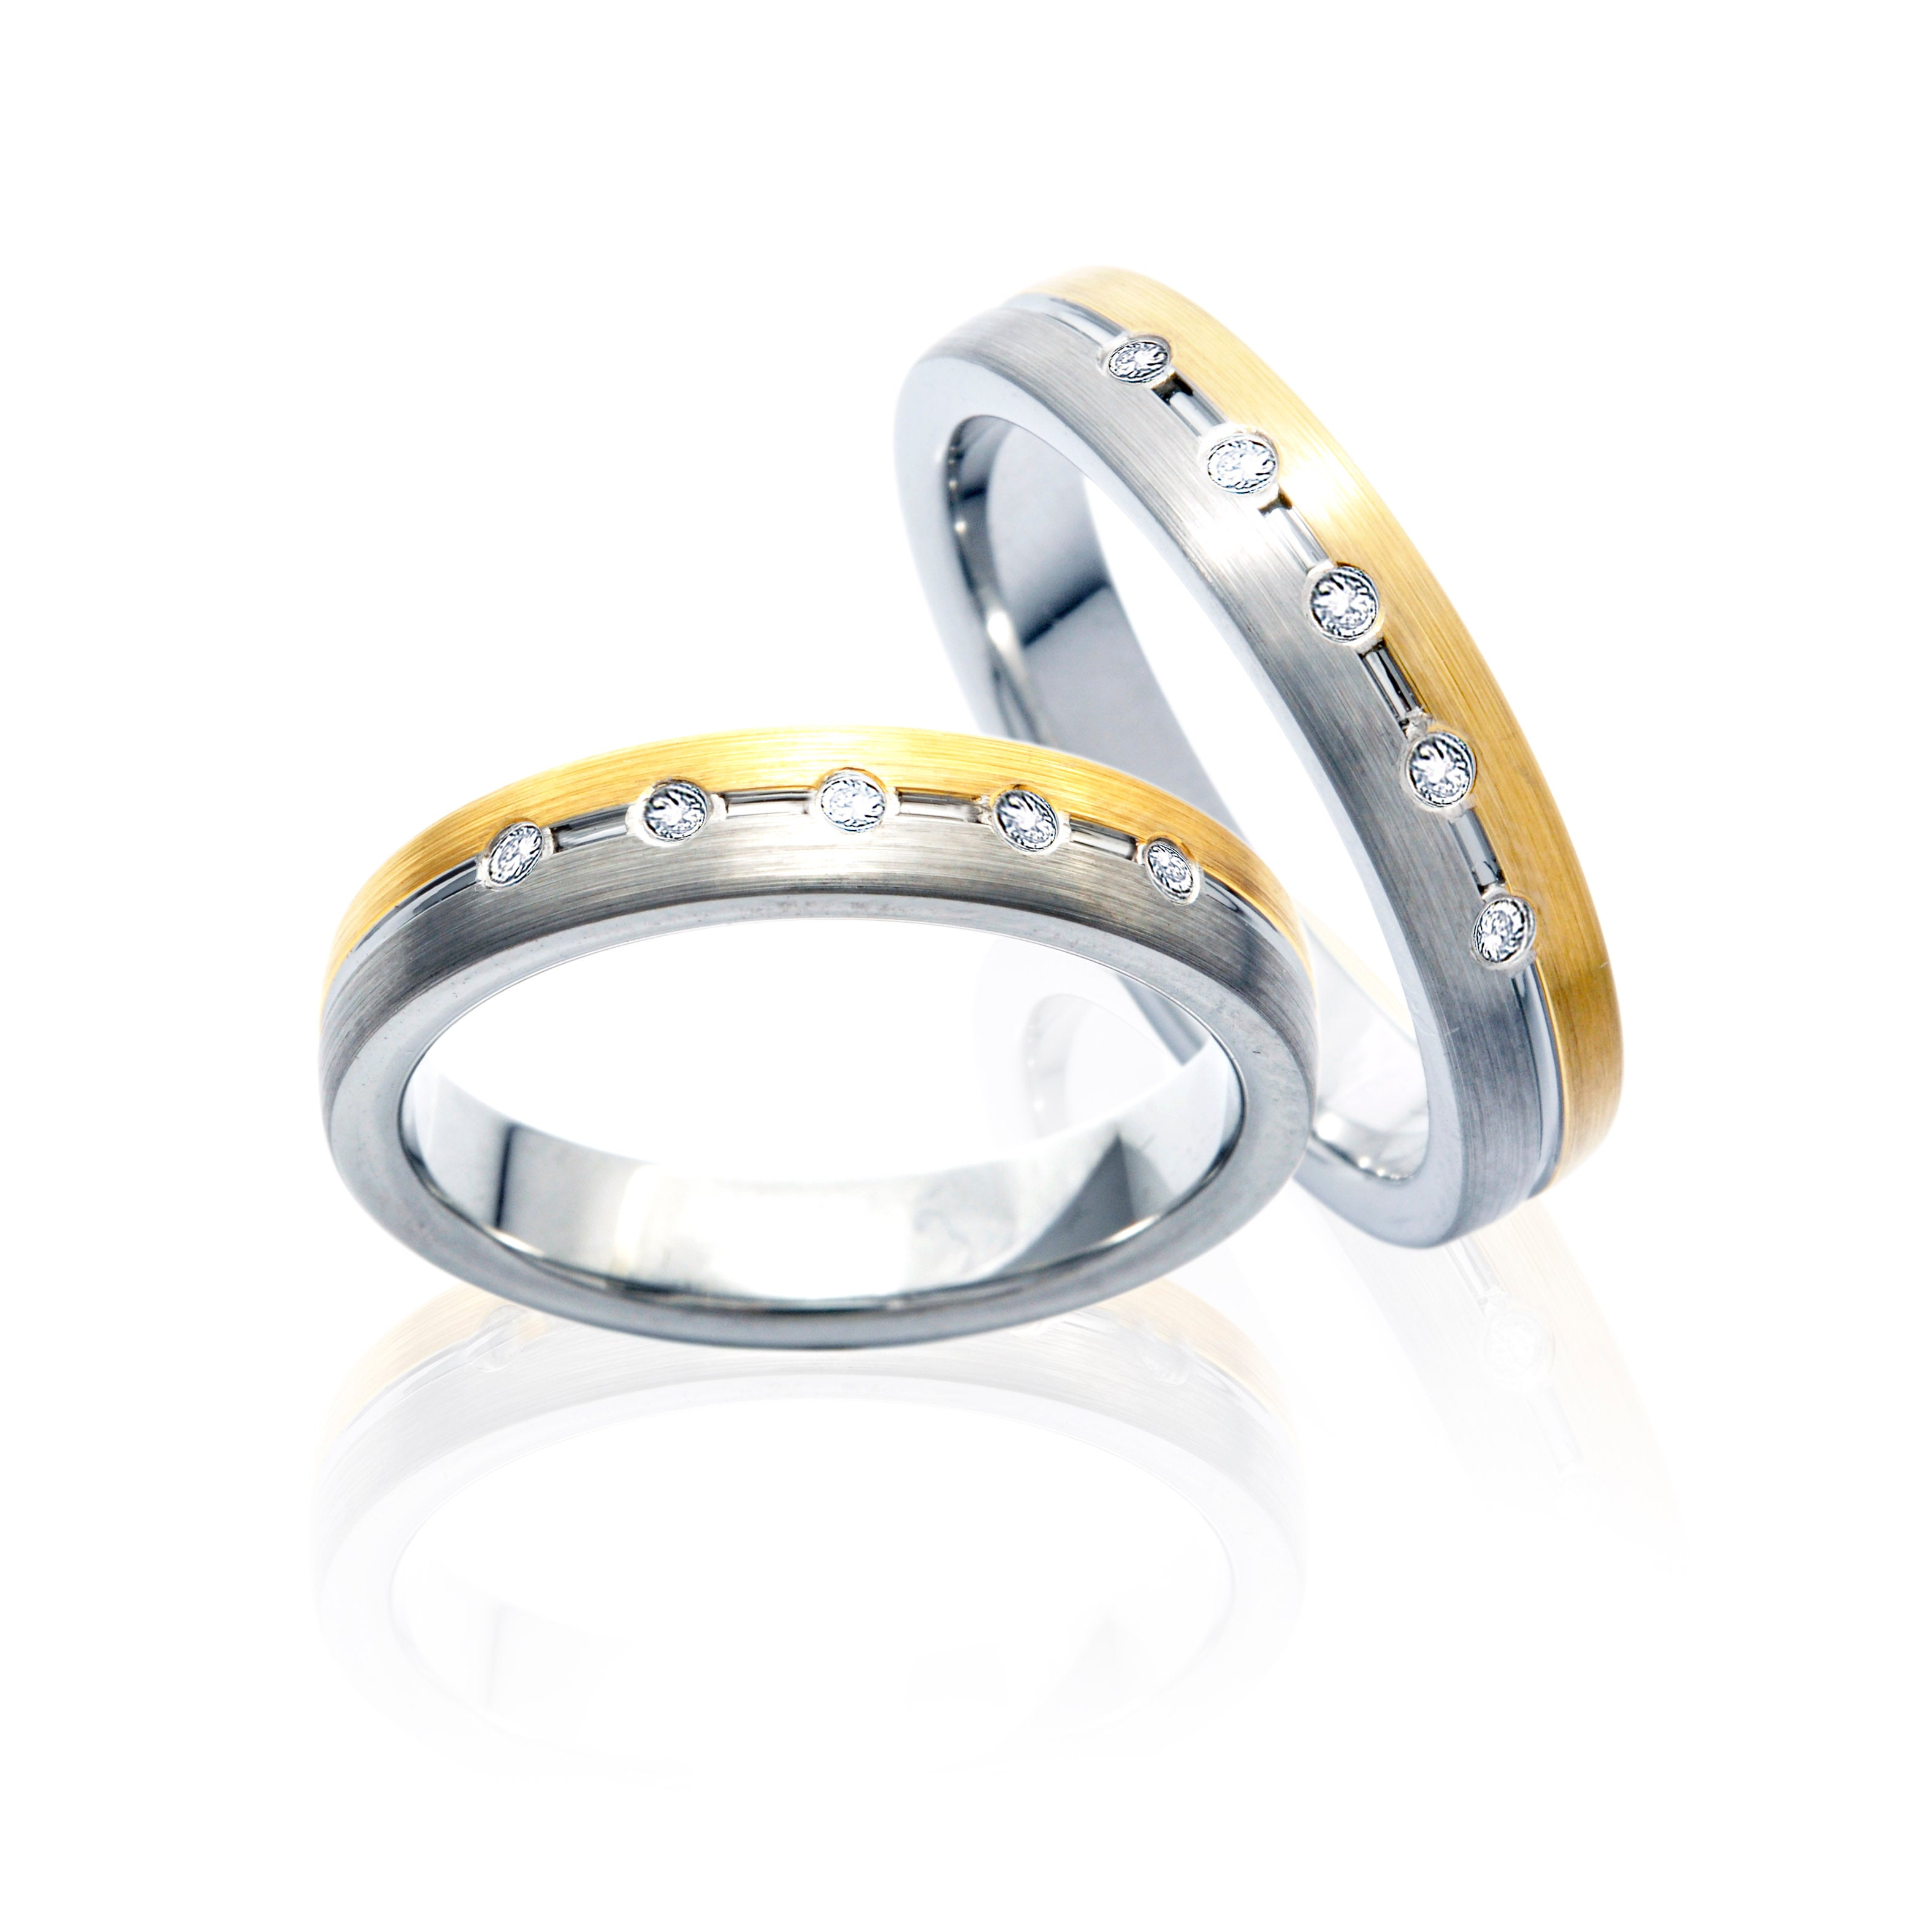 The SUPREME Two-Tone tone Tungsten Ring with Diamonds in Five Rows in Pairs